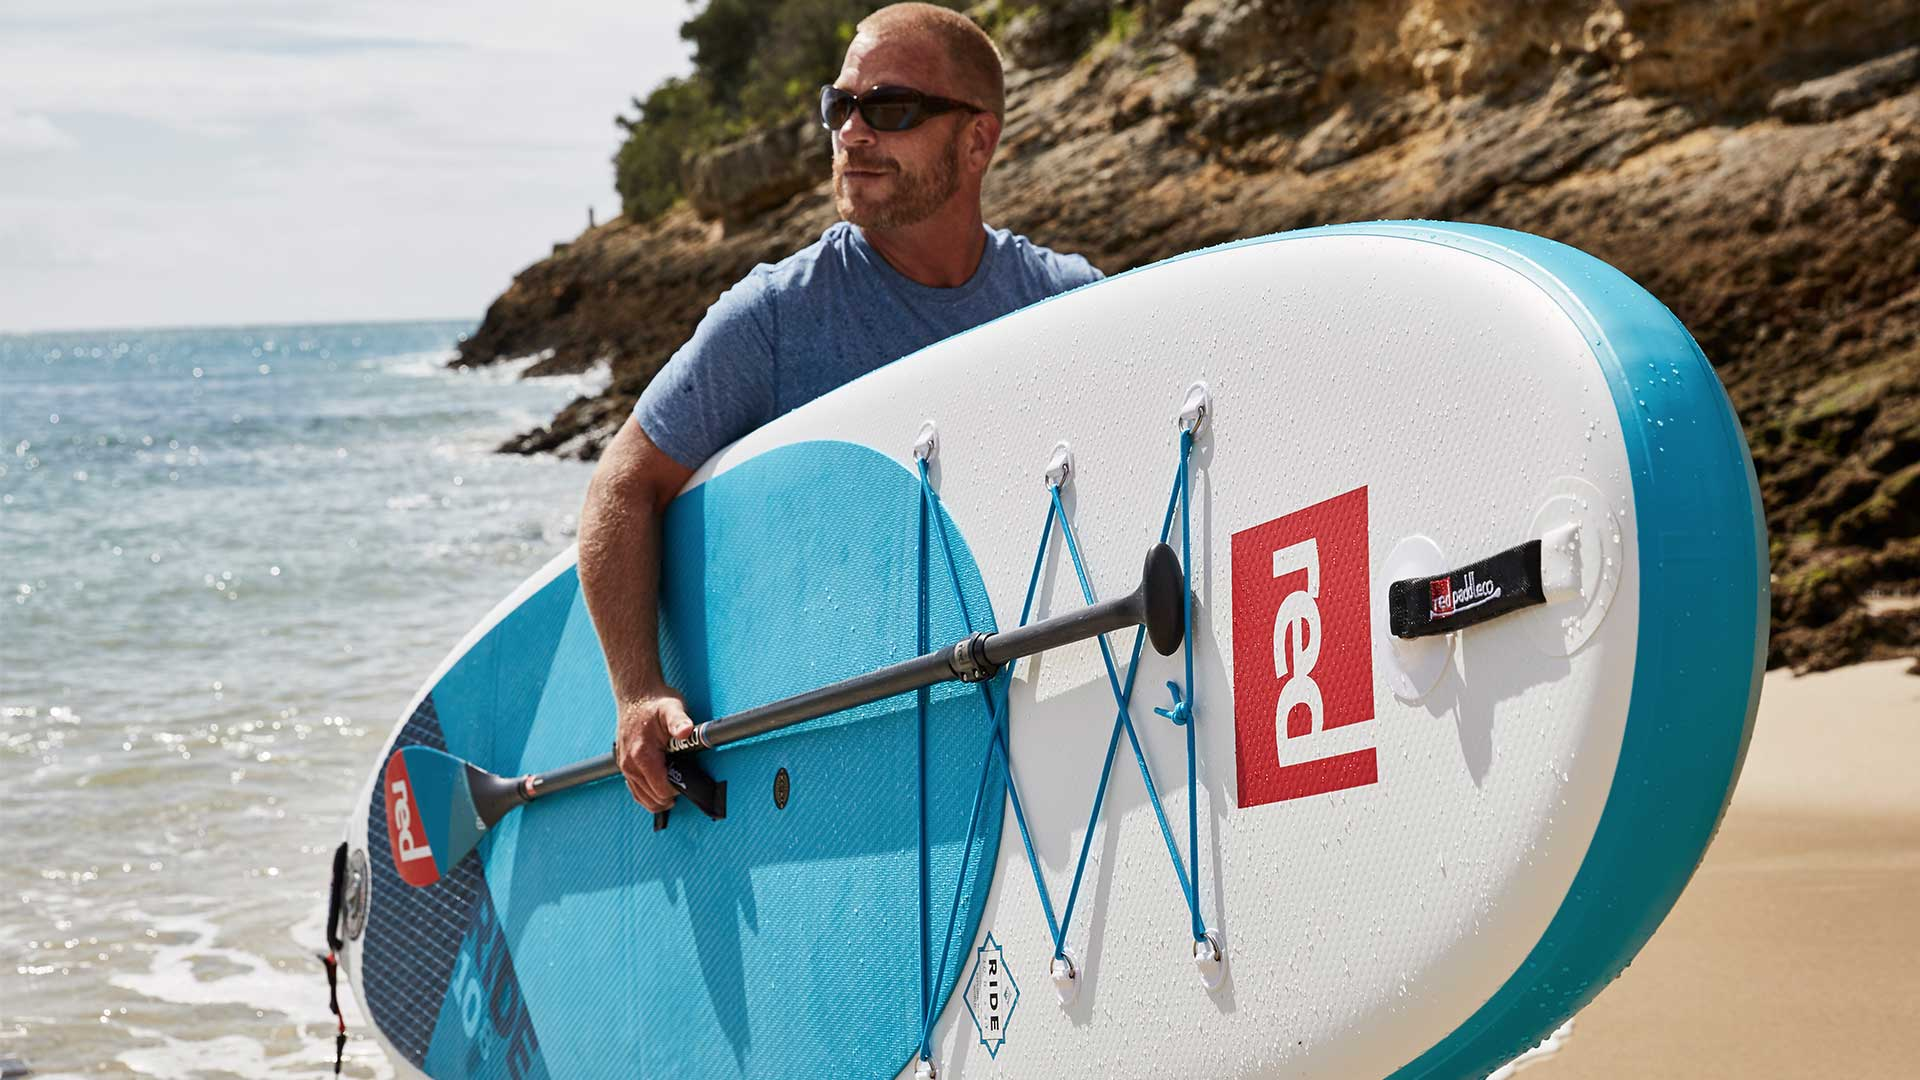 redpaddleco-108-ride-msl-inflatable-paddle-board-desktop-gallery-1